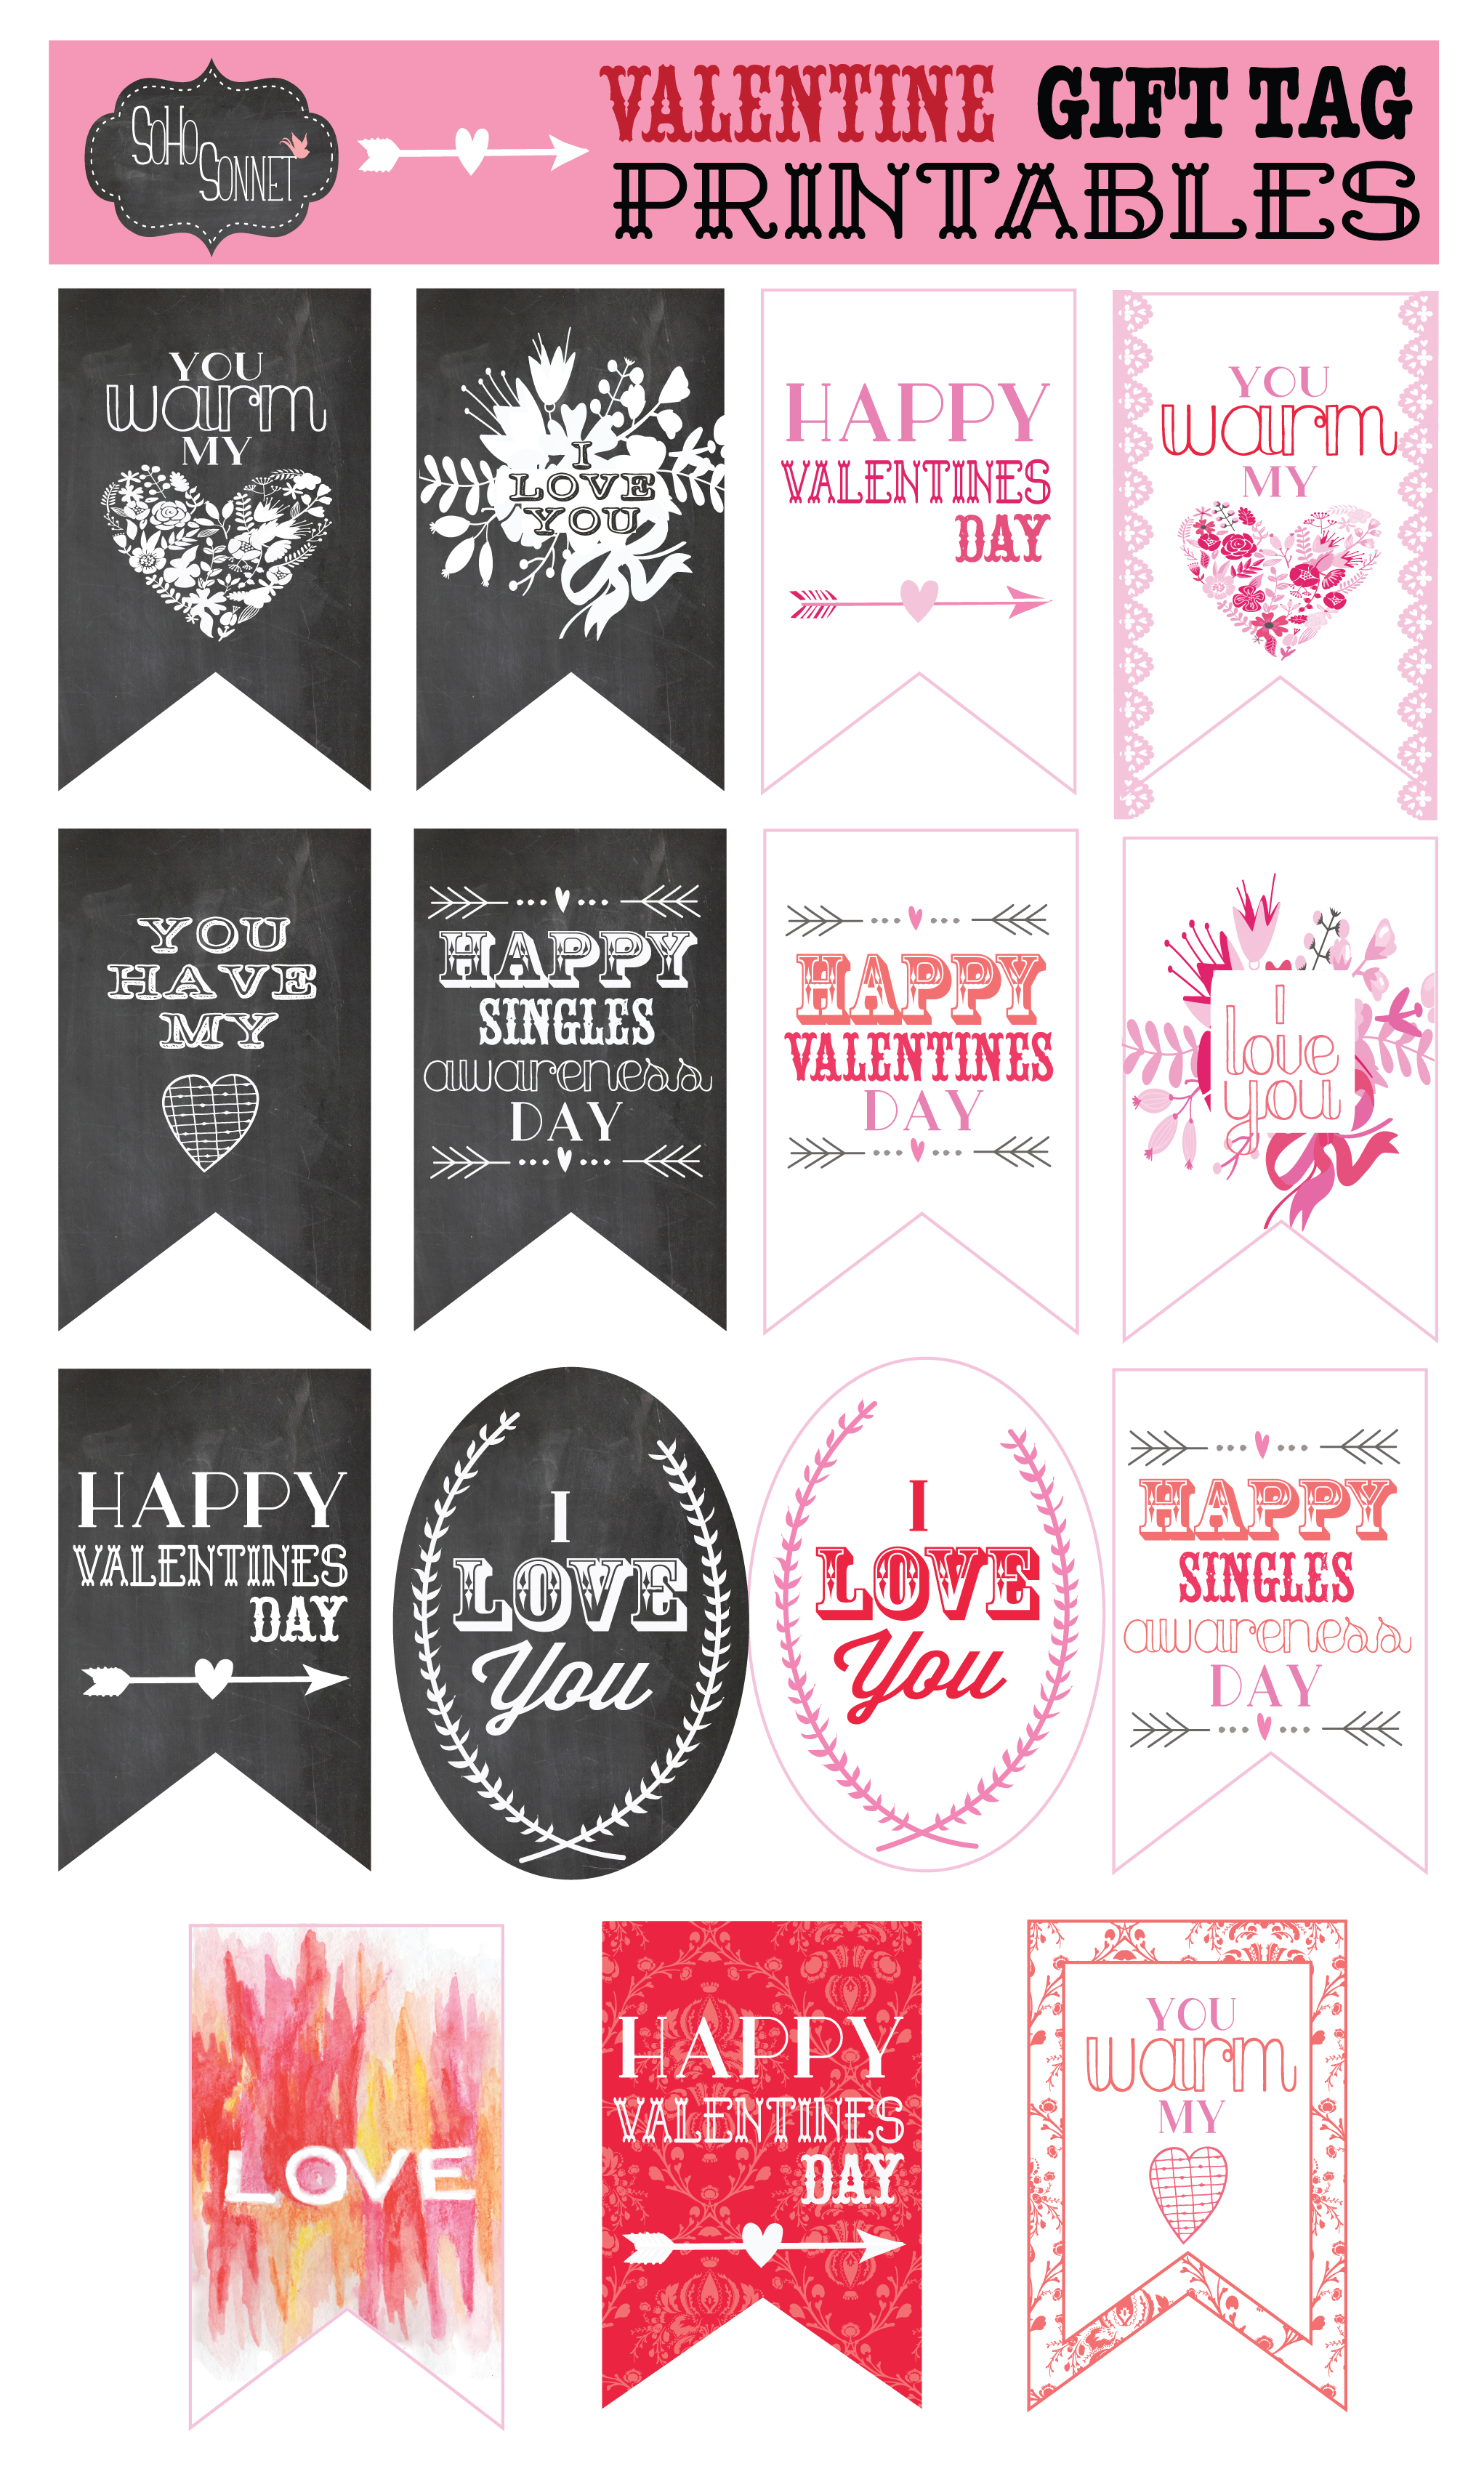 image regarding Gift Tags Printable called No cost Valentine Present Tag Printables - SohoSonnet Imaginative Dwelling